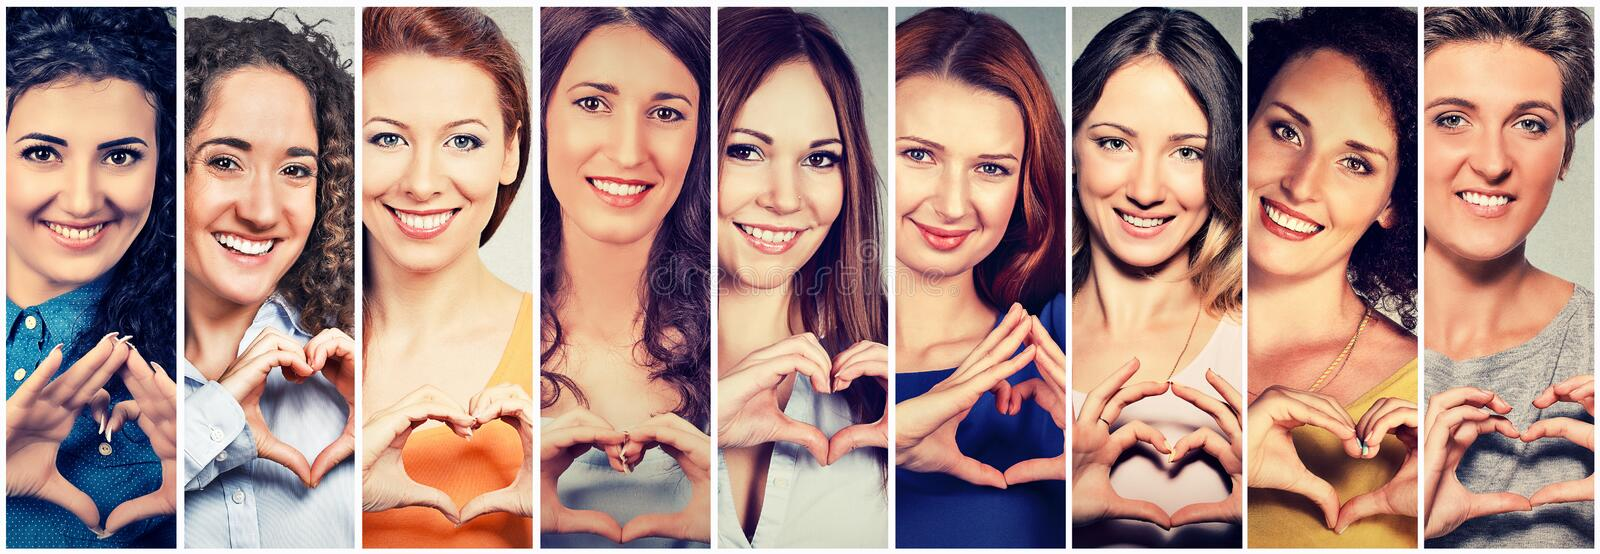 Multiethnic group of happy women making heart sign with hands royalty free stock images